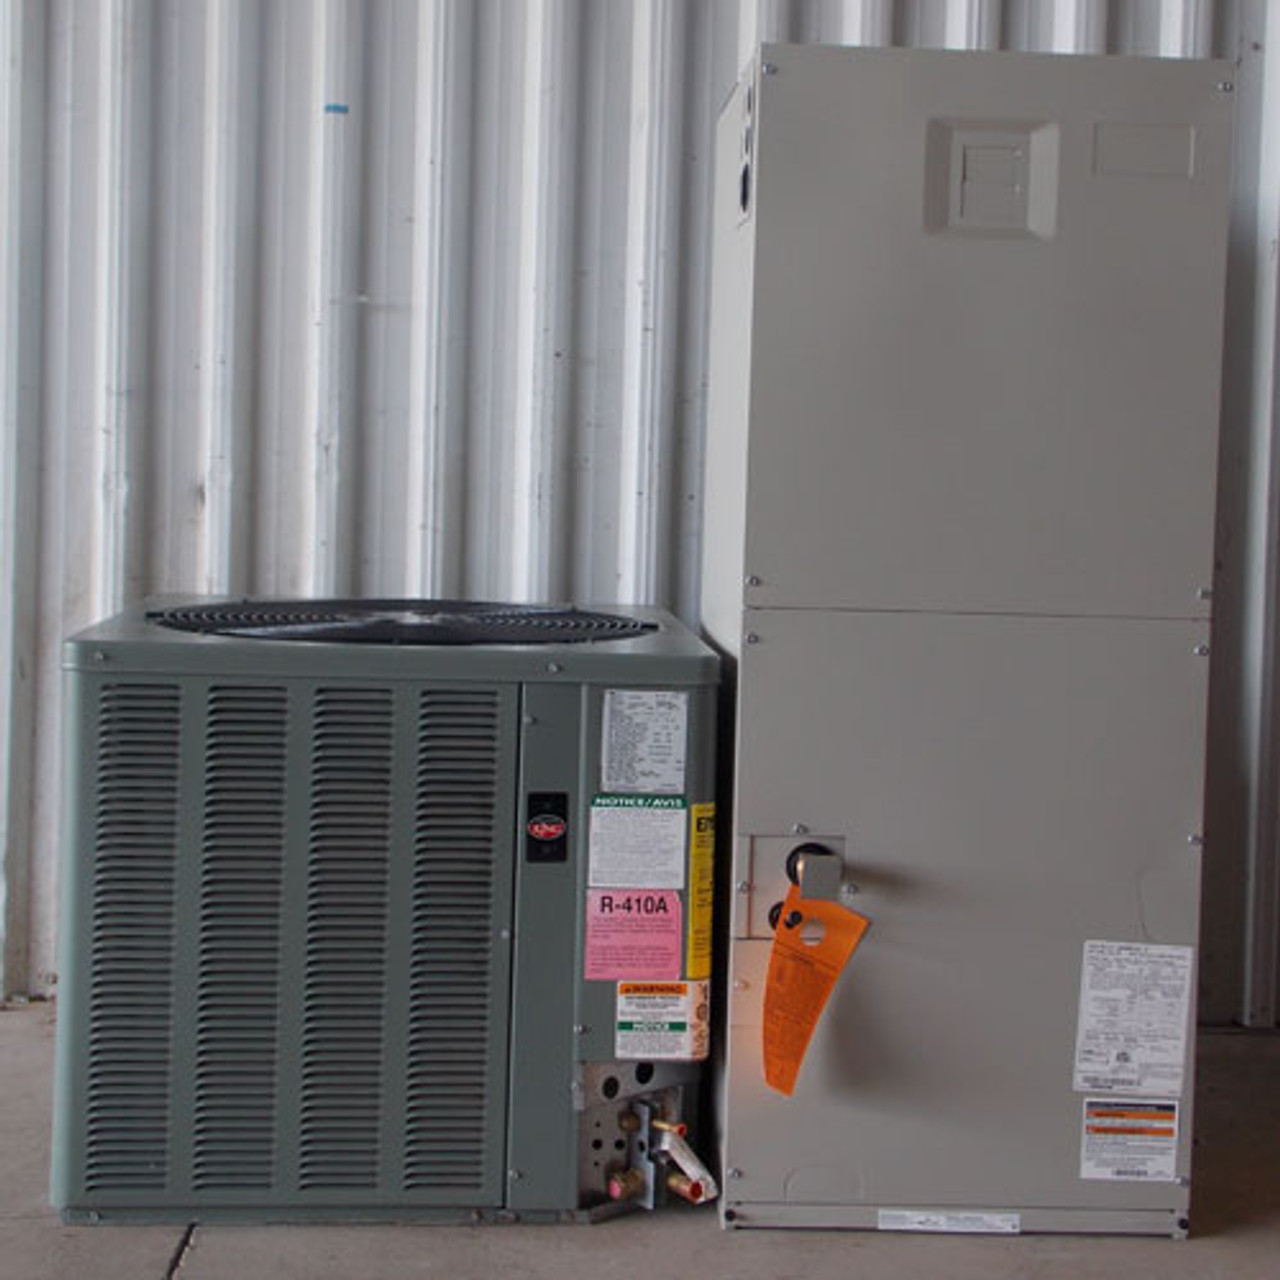 Weather King Air Condenser 13 SEER 2.5T R-410A 208-230V w/ Air Handler - New